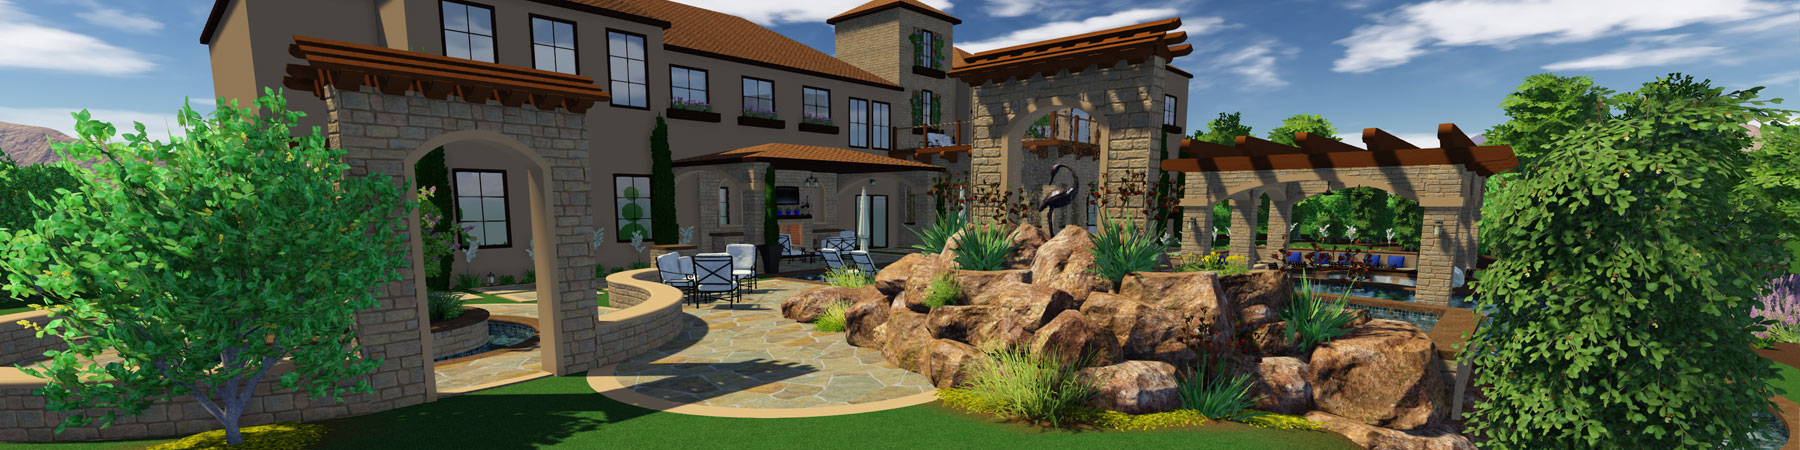 3d Pool Design Software Free Download affordable maxresdefault has home decorating software free free home design Vip3d Professional 3d Pool And Landscape Design Software